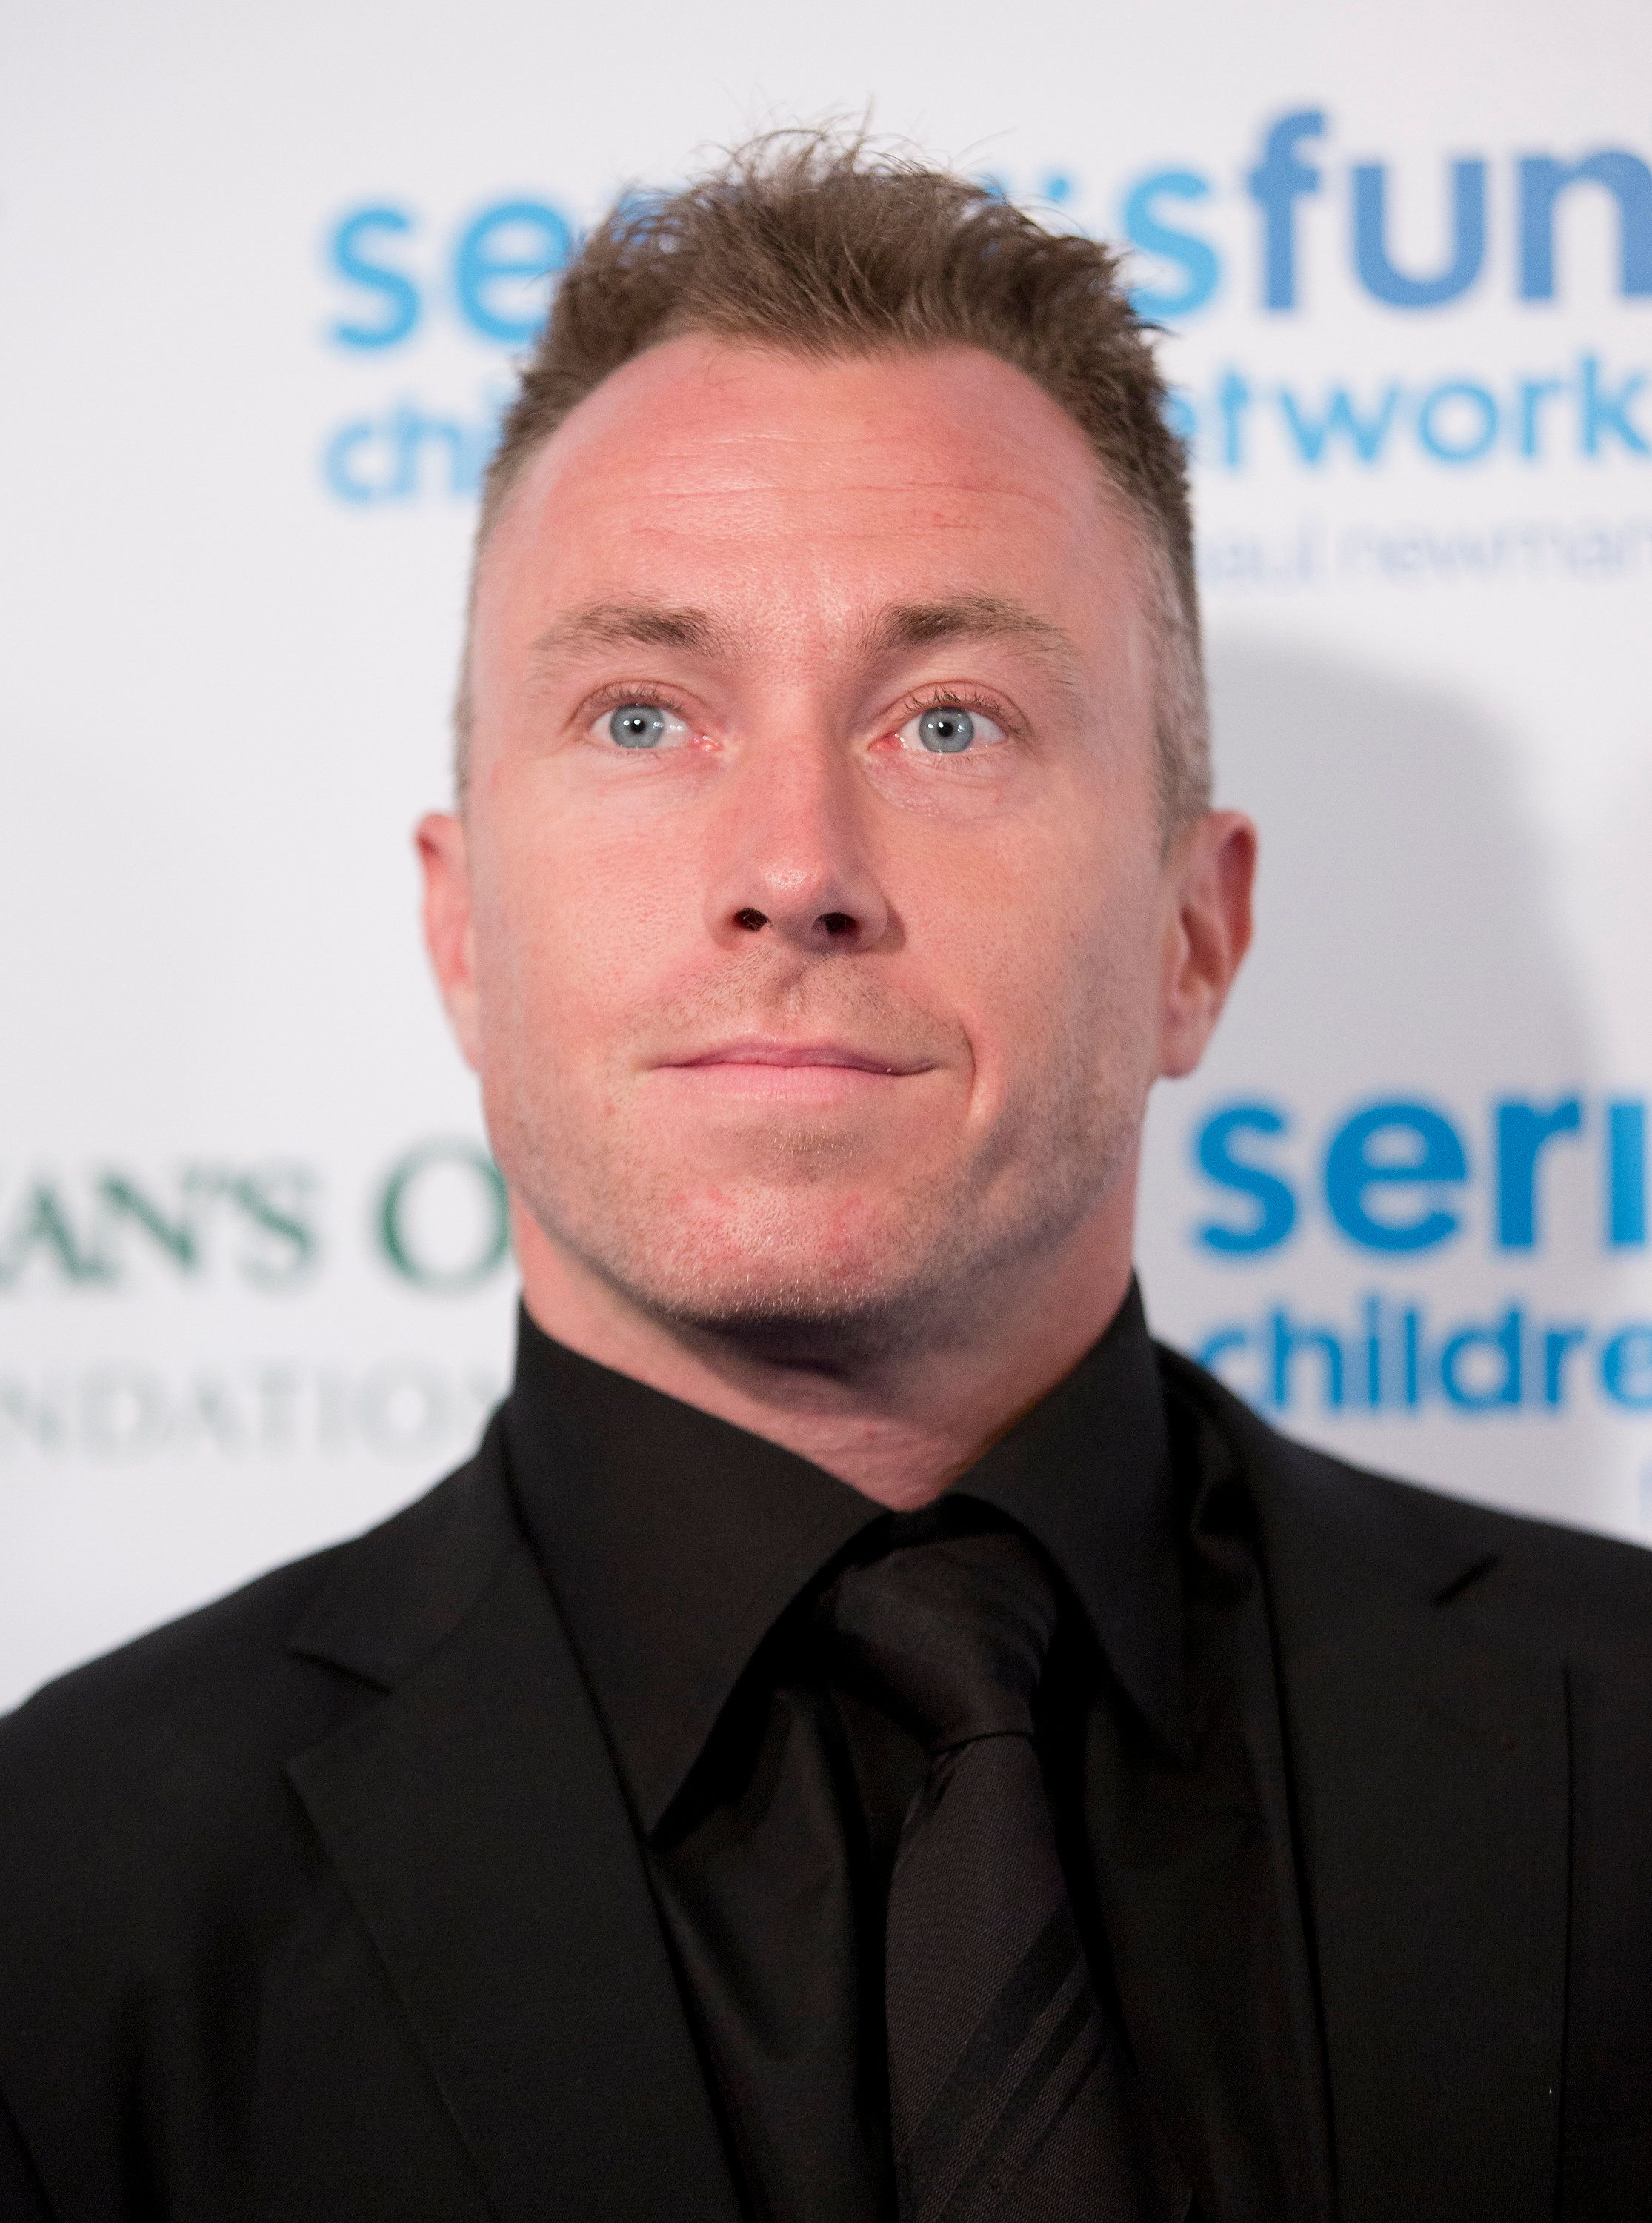 James Jordan Vows Never To Watch 'Strictly Come Dancing' Again, Accusing Bosses Of Fixing The